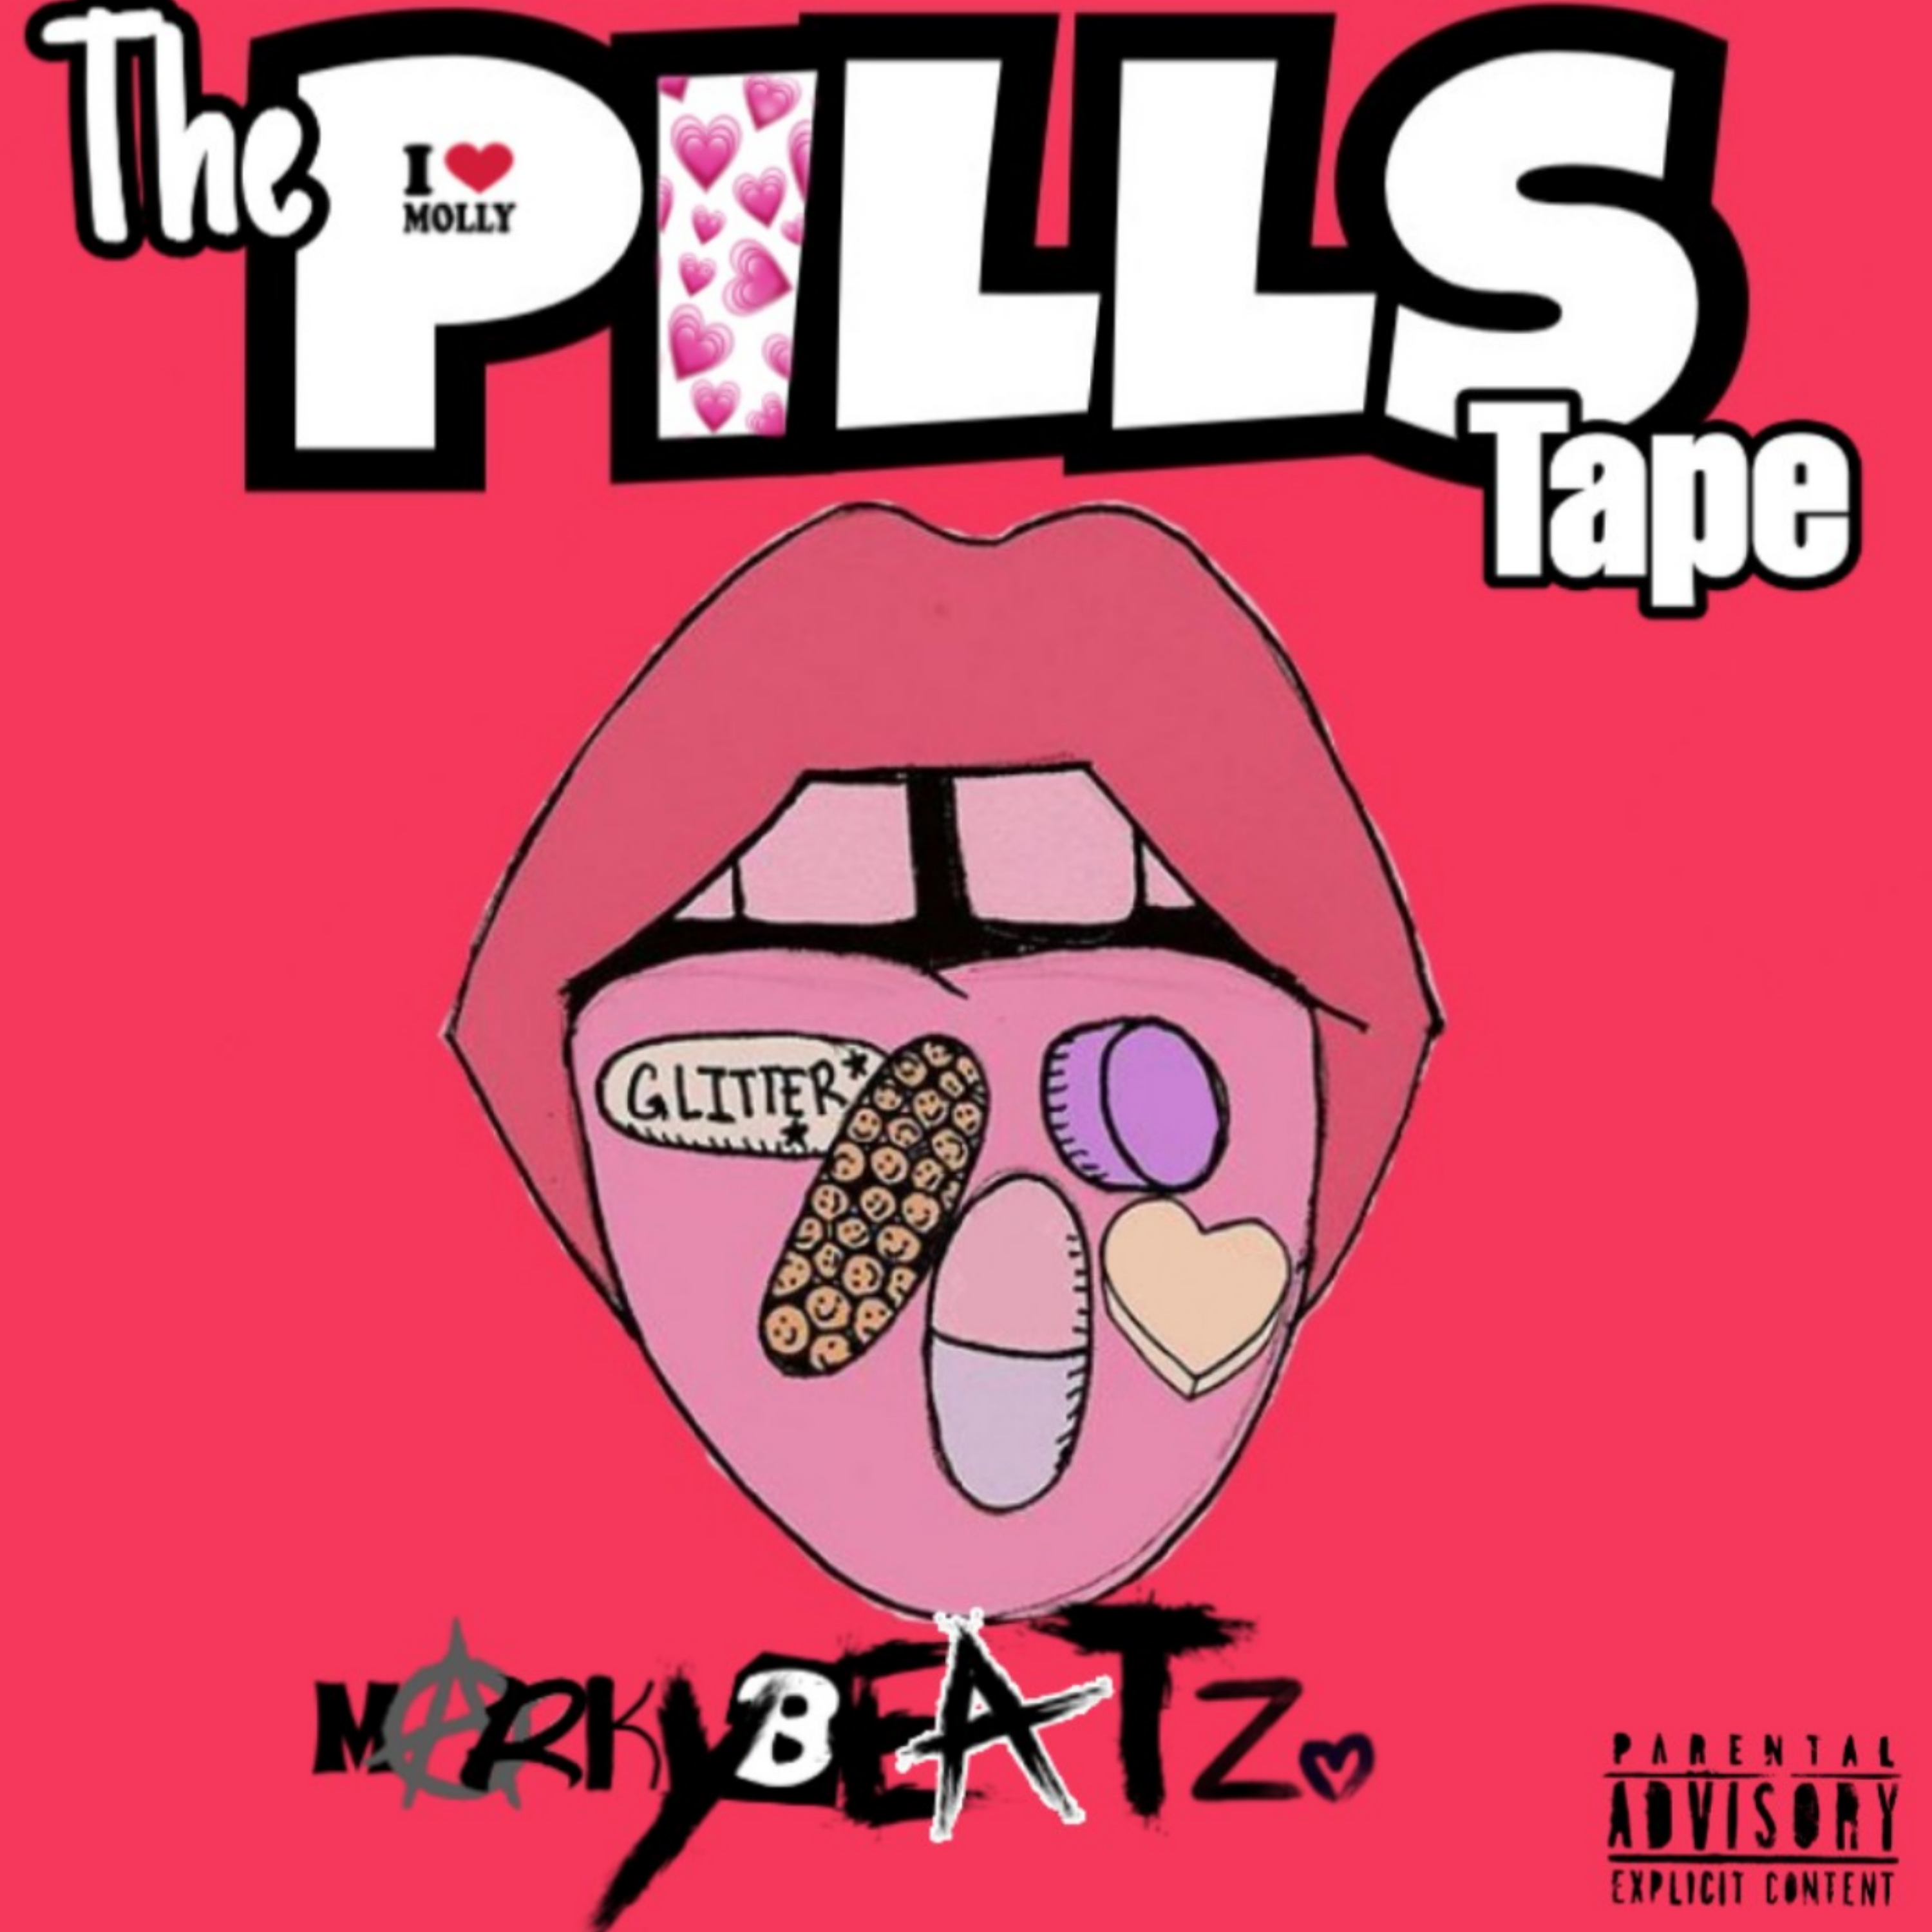 Just a heads up, Tape dropping Feb 10th